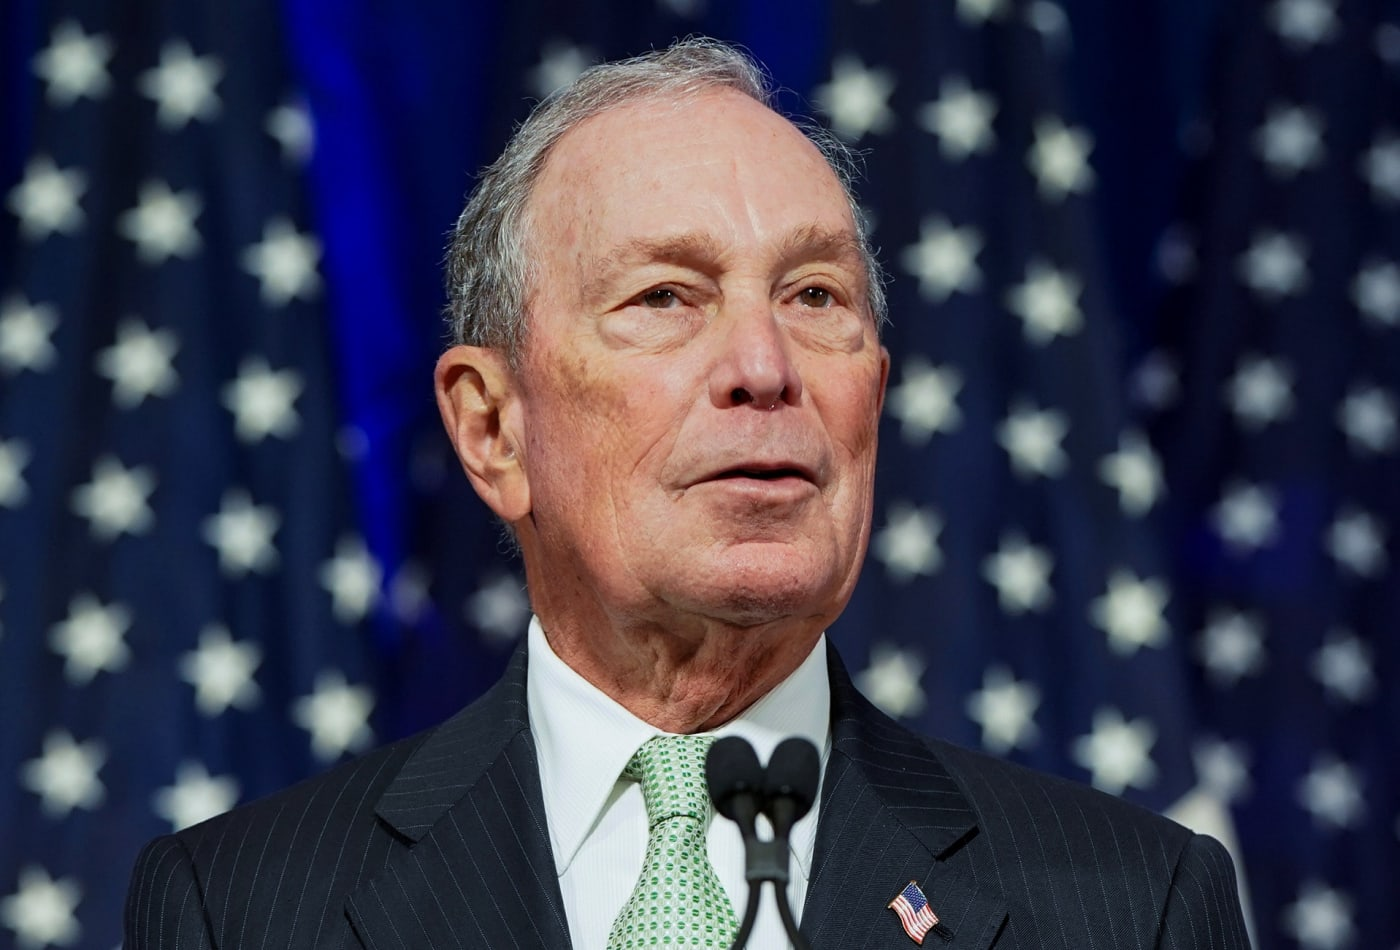 Michael Bloomberg Net Worth